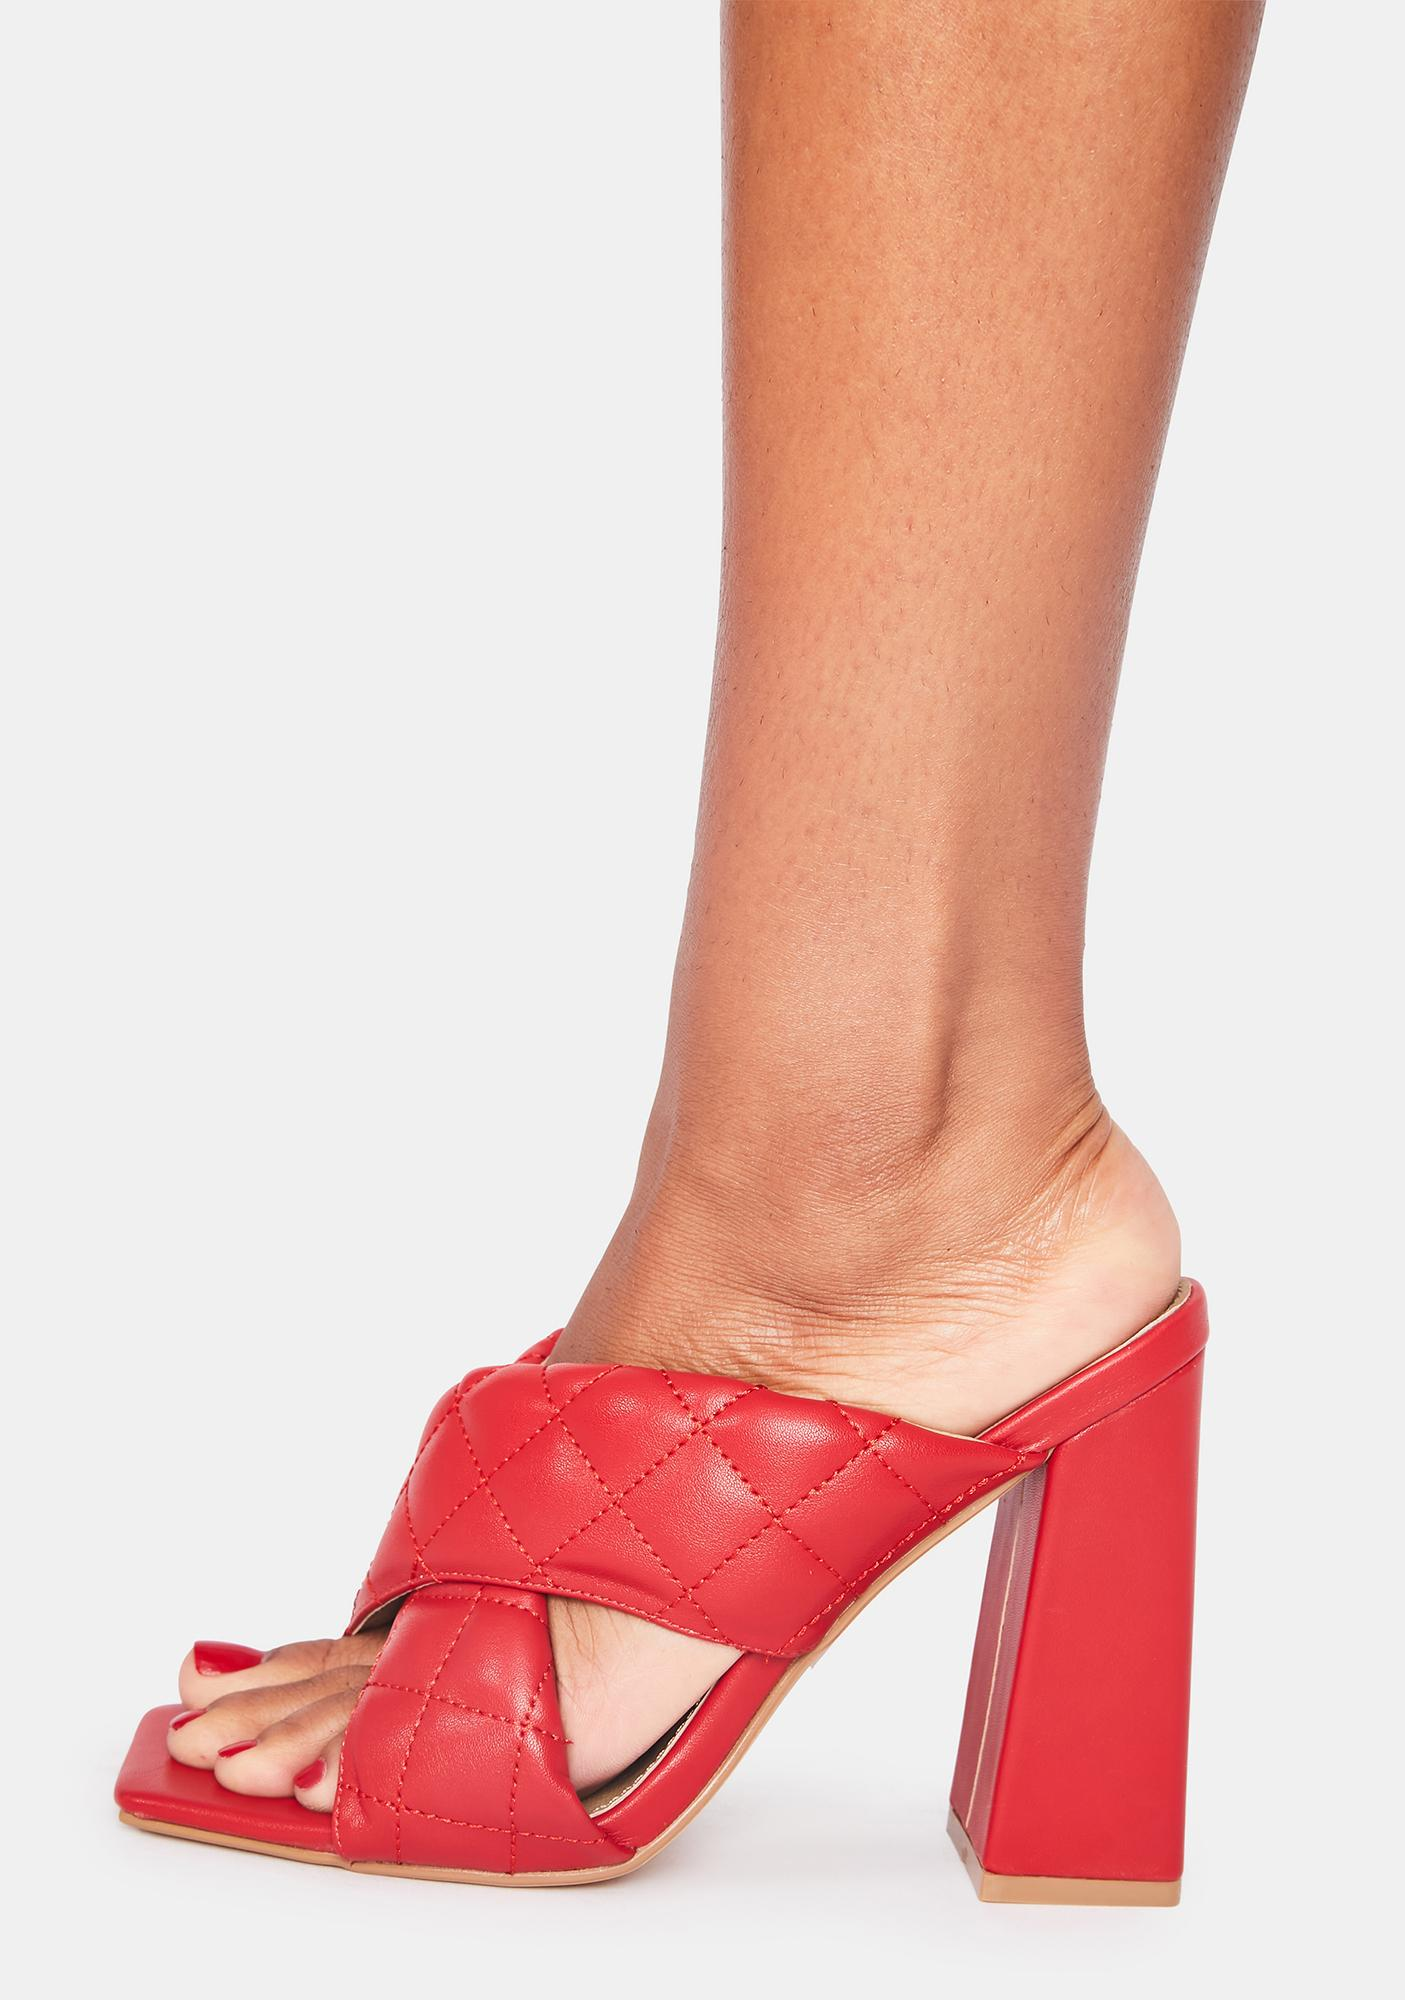 Crimson Exceed Expectations Heeled Sandals